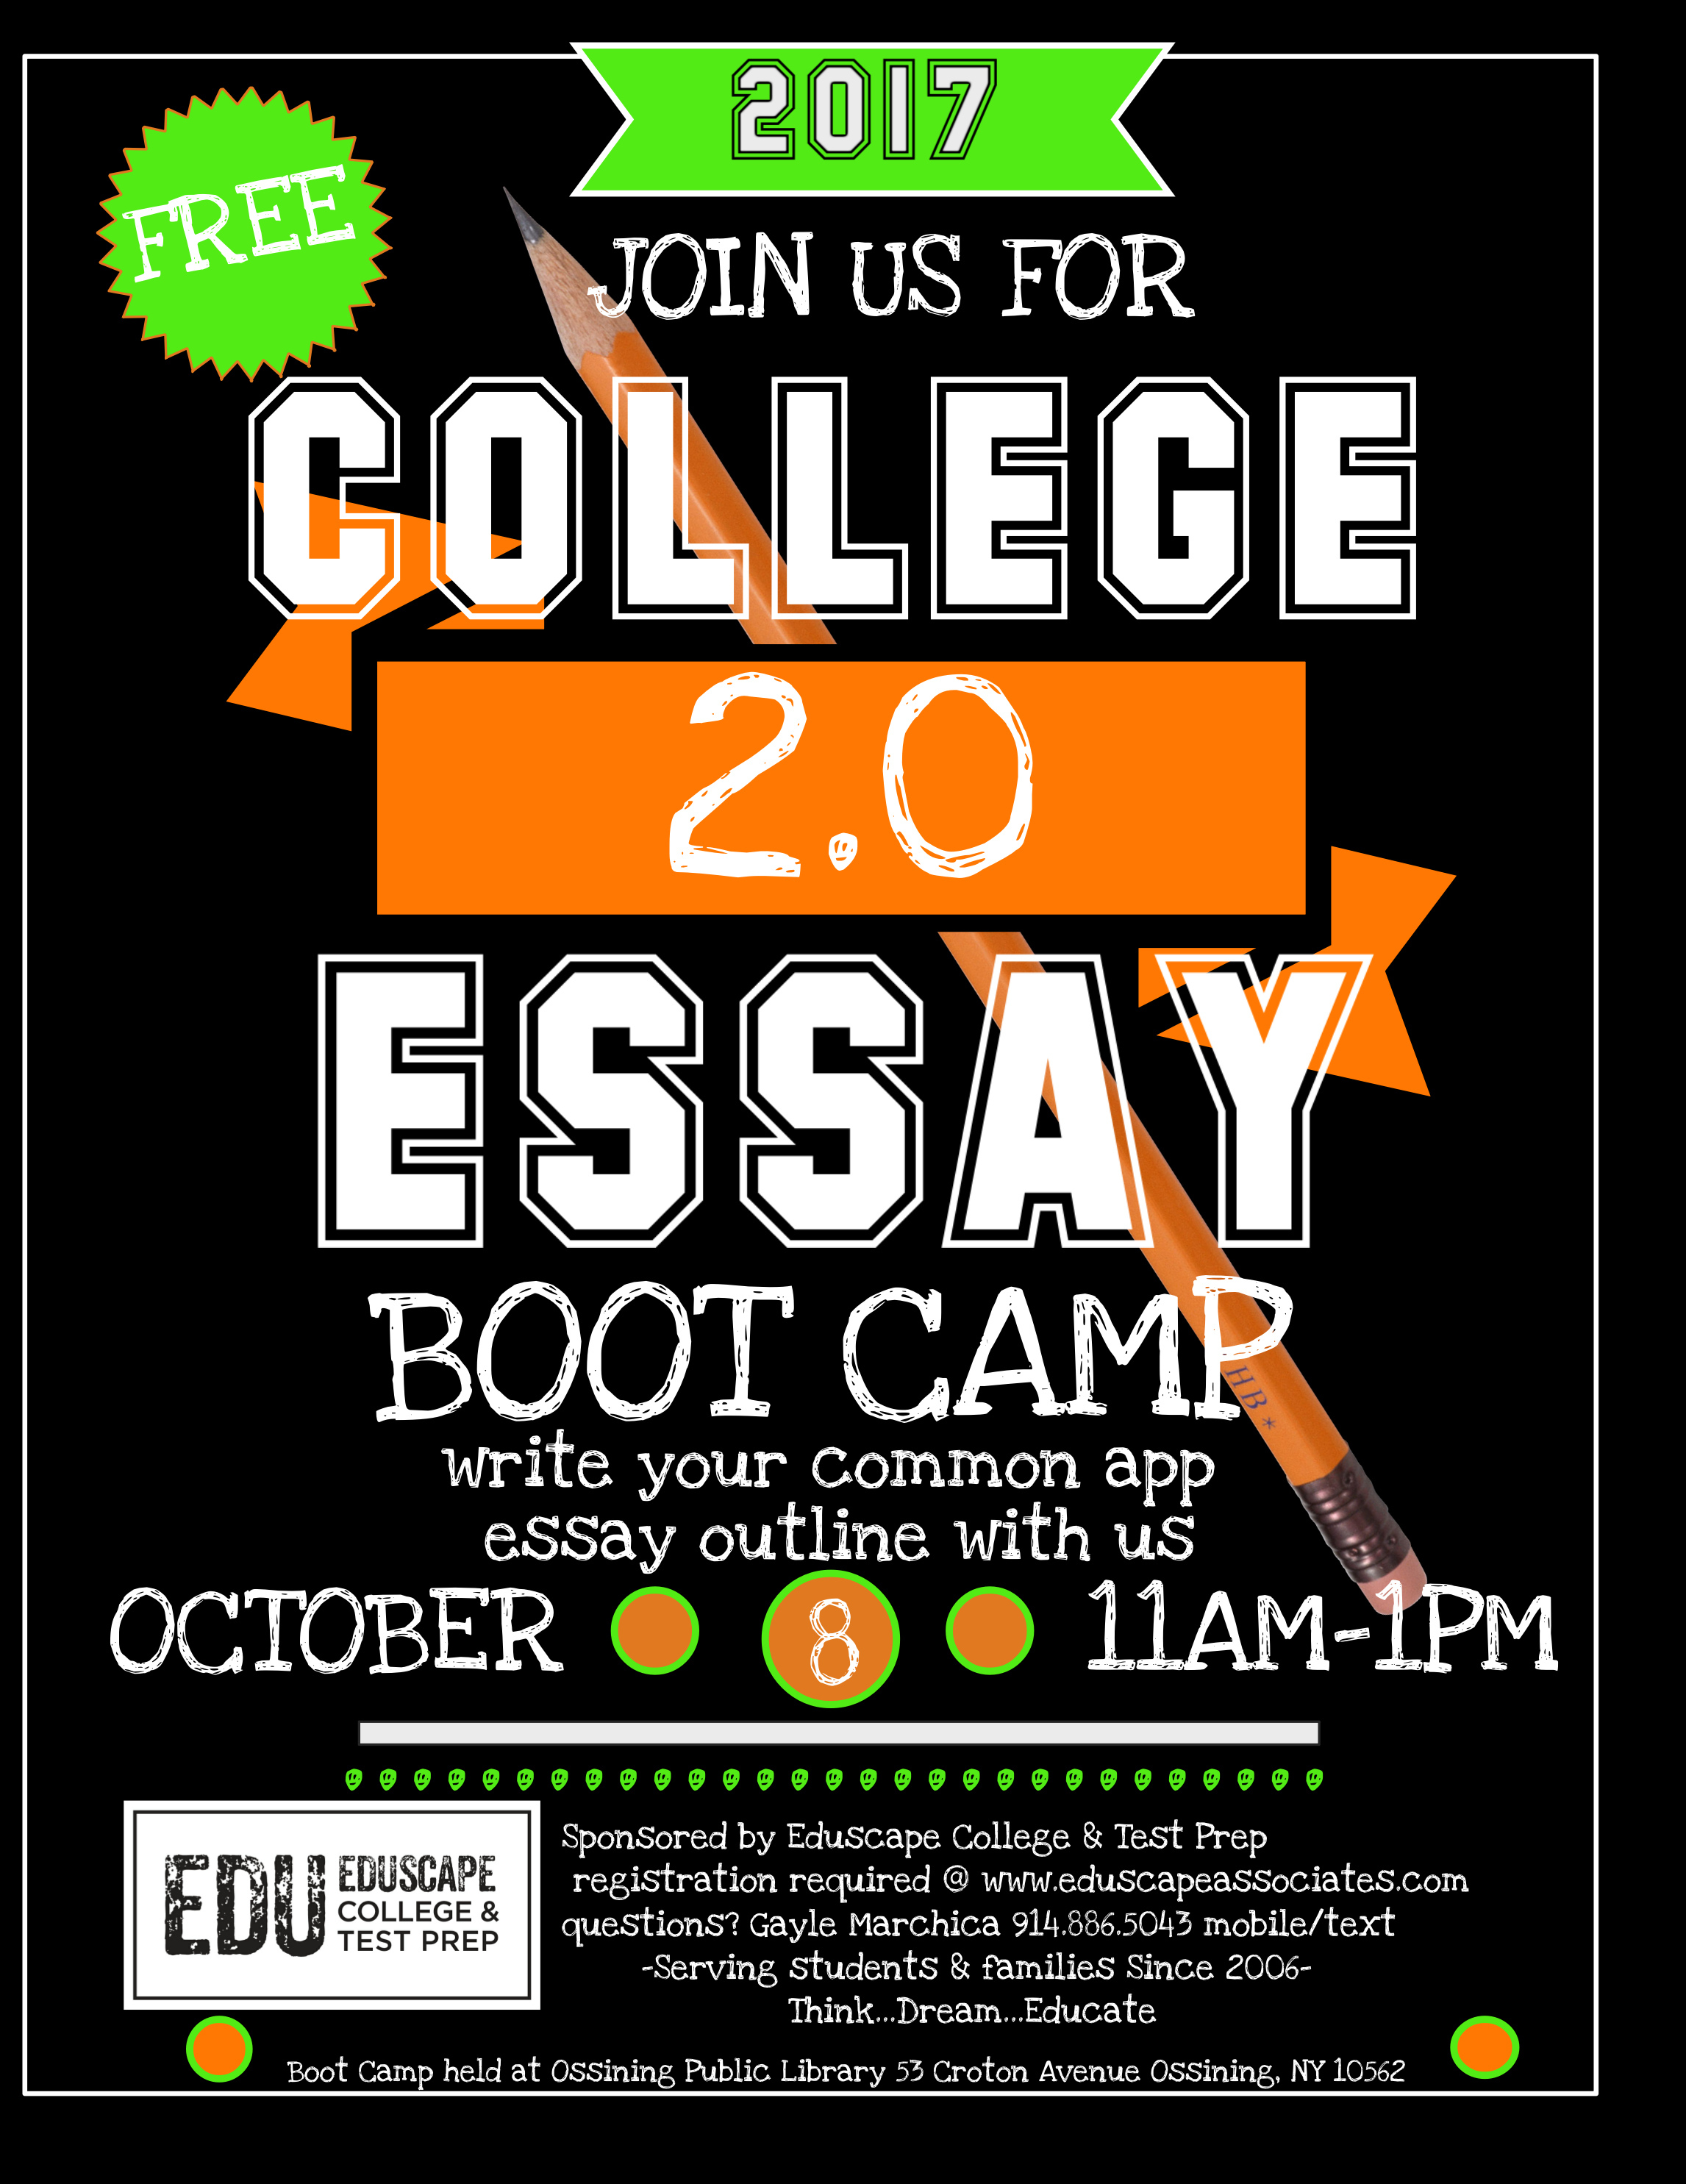 college essay boot camp northeastern The mission of marist high school as a roman catholic, coed high school, is to make jesus christ known and loved in the marist brothers' tradition, while preparing students for higher education and life.